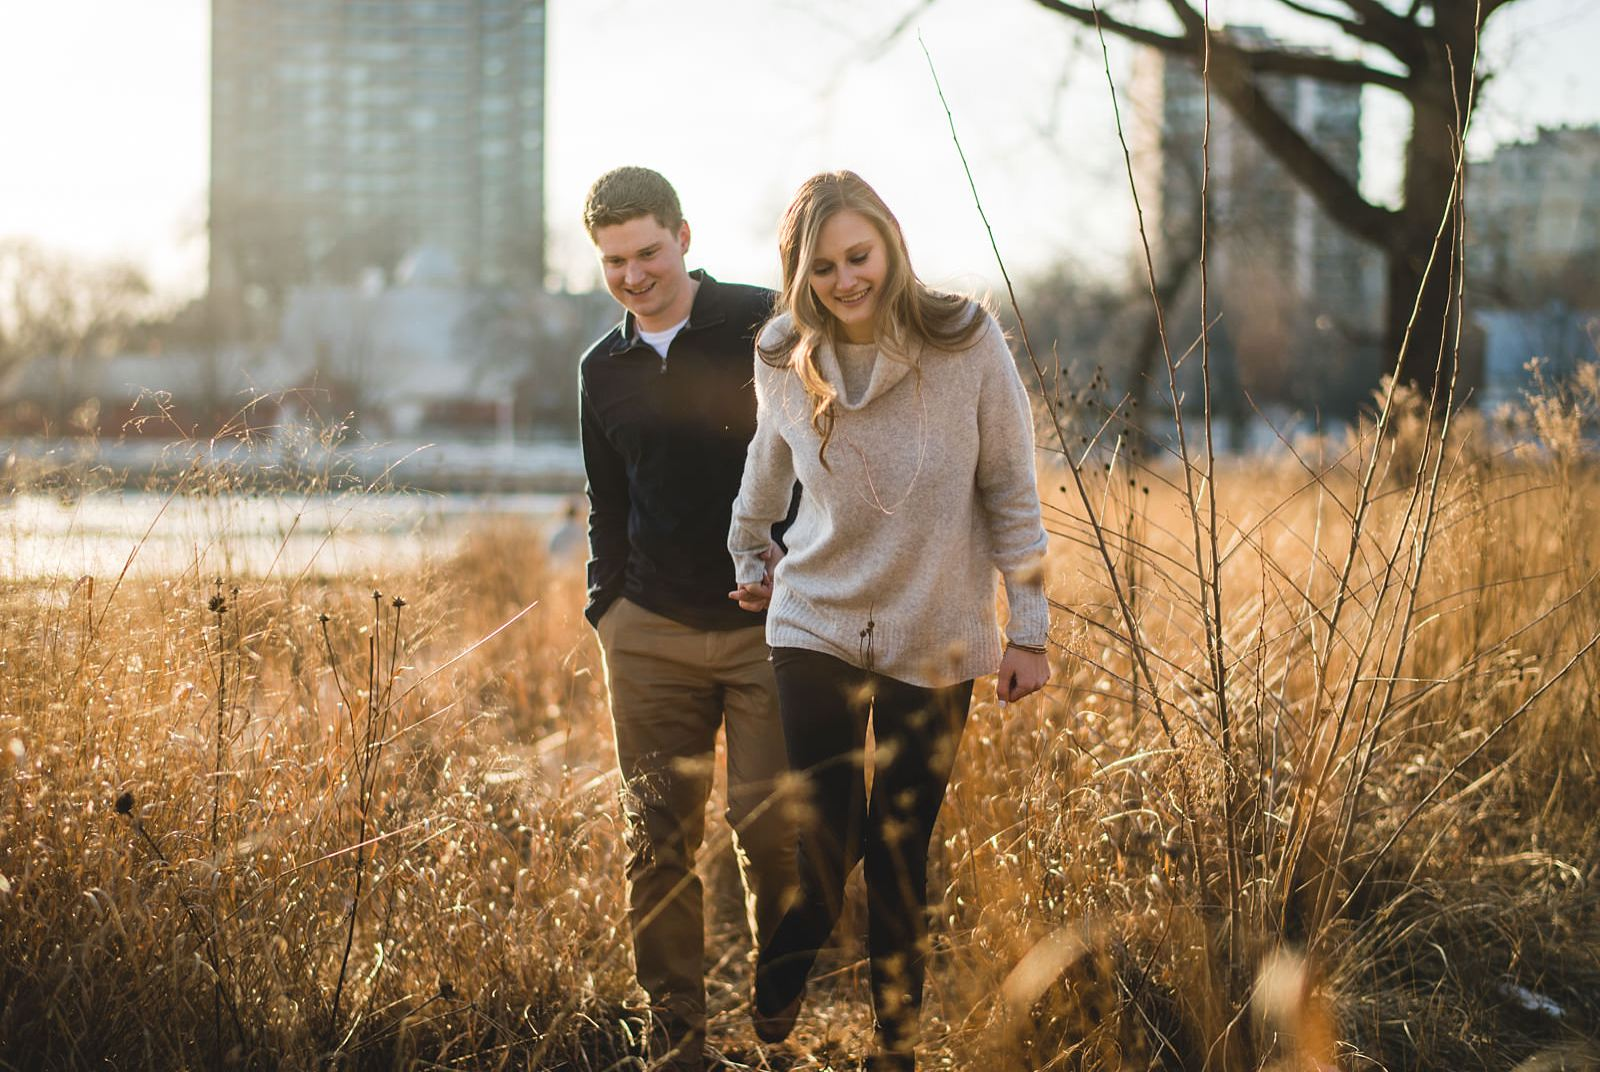 18 sunset engagement photography - Chicago Engagement Photos // Katie + Nick